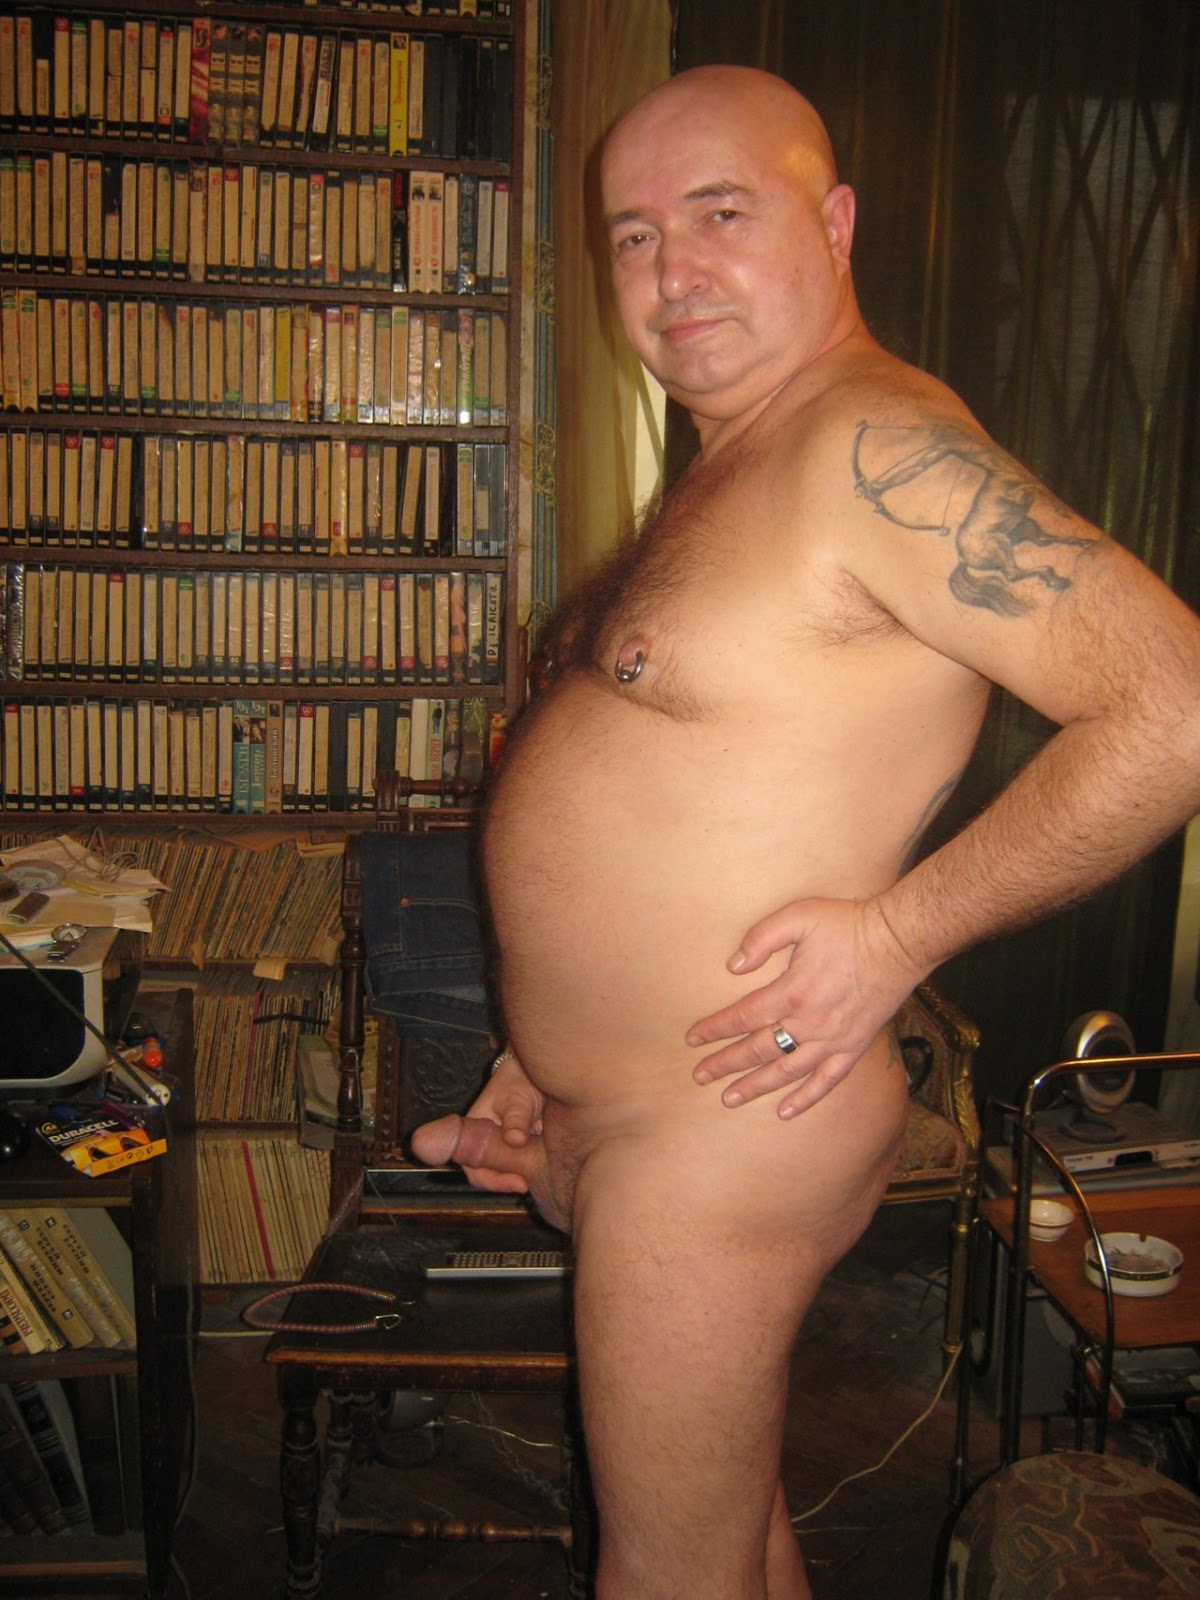 Chubby daddy gay man old